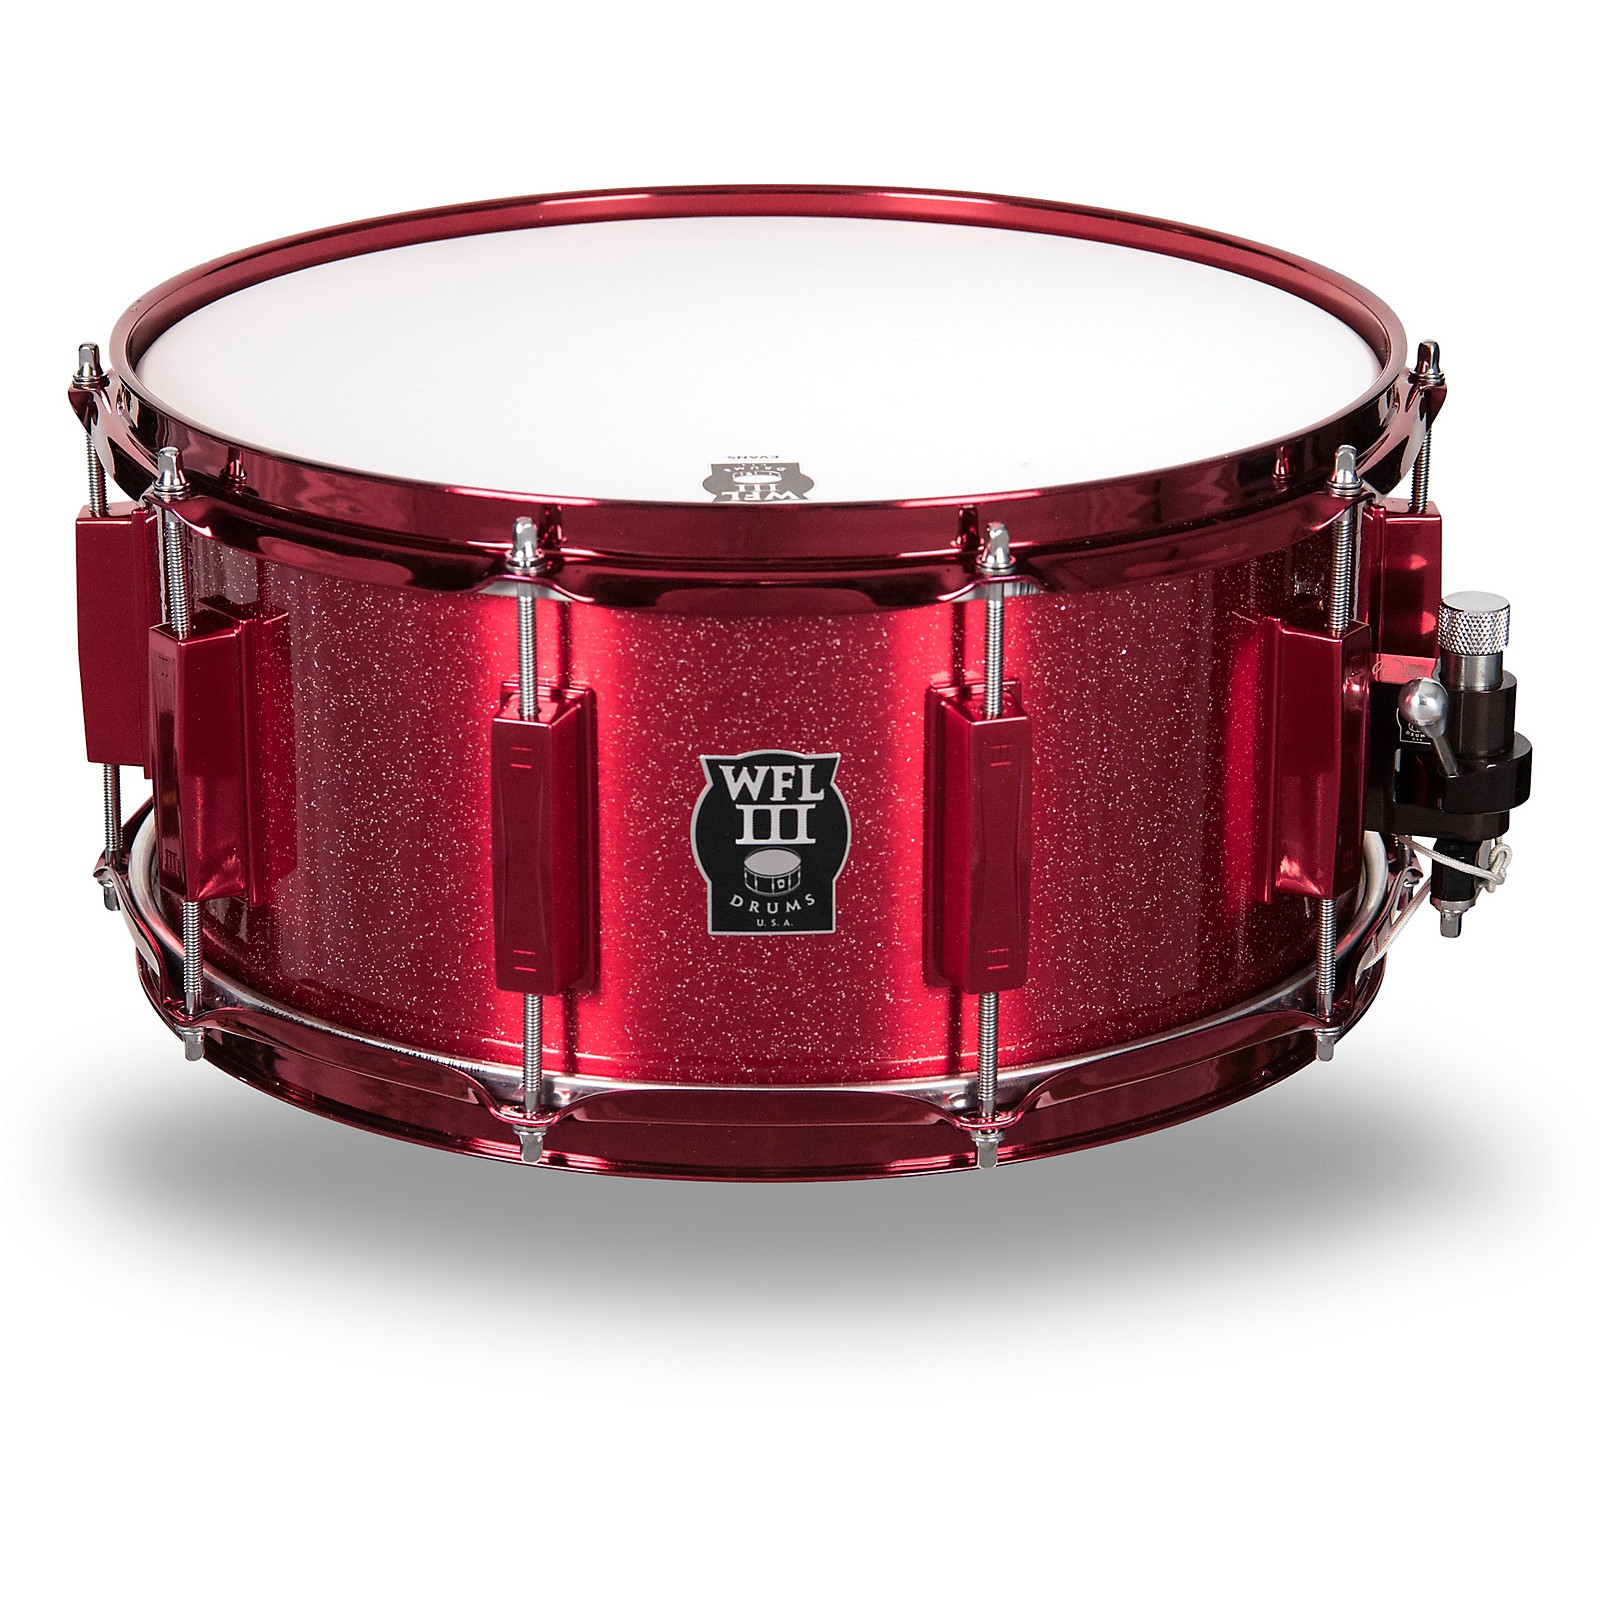 WFLIII Drums Signature Metal Snare Drum with Red Hardware